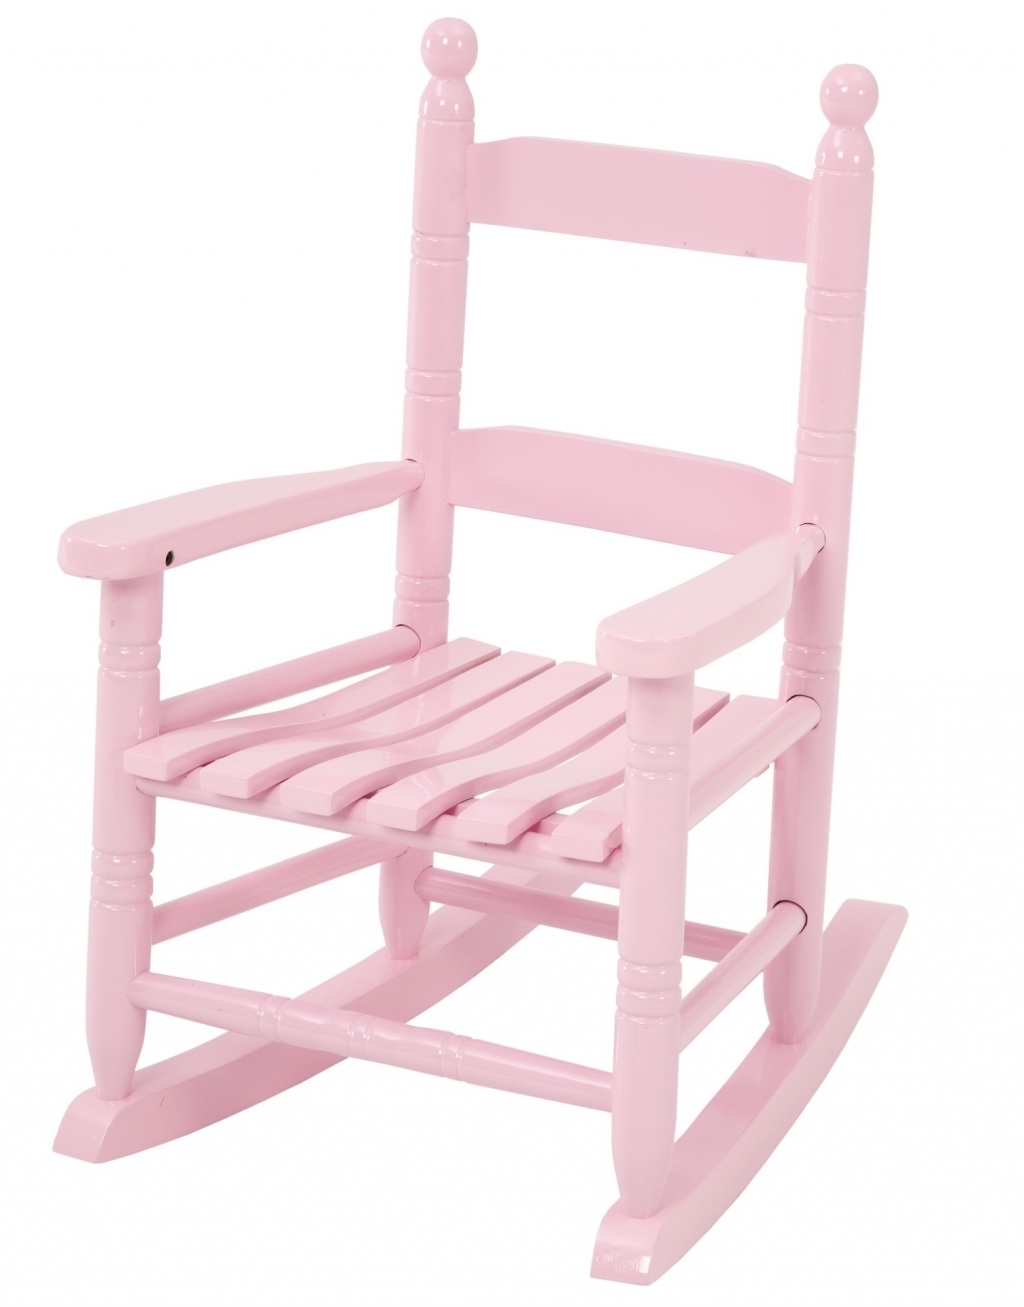 Furniture: Childrens Rocking Chairs Luxury Jack Post Pink Childrens Within Trendy Rocking Chairs For Toddlers (View 12 of 15)